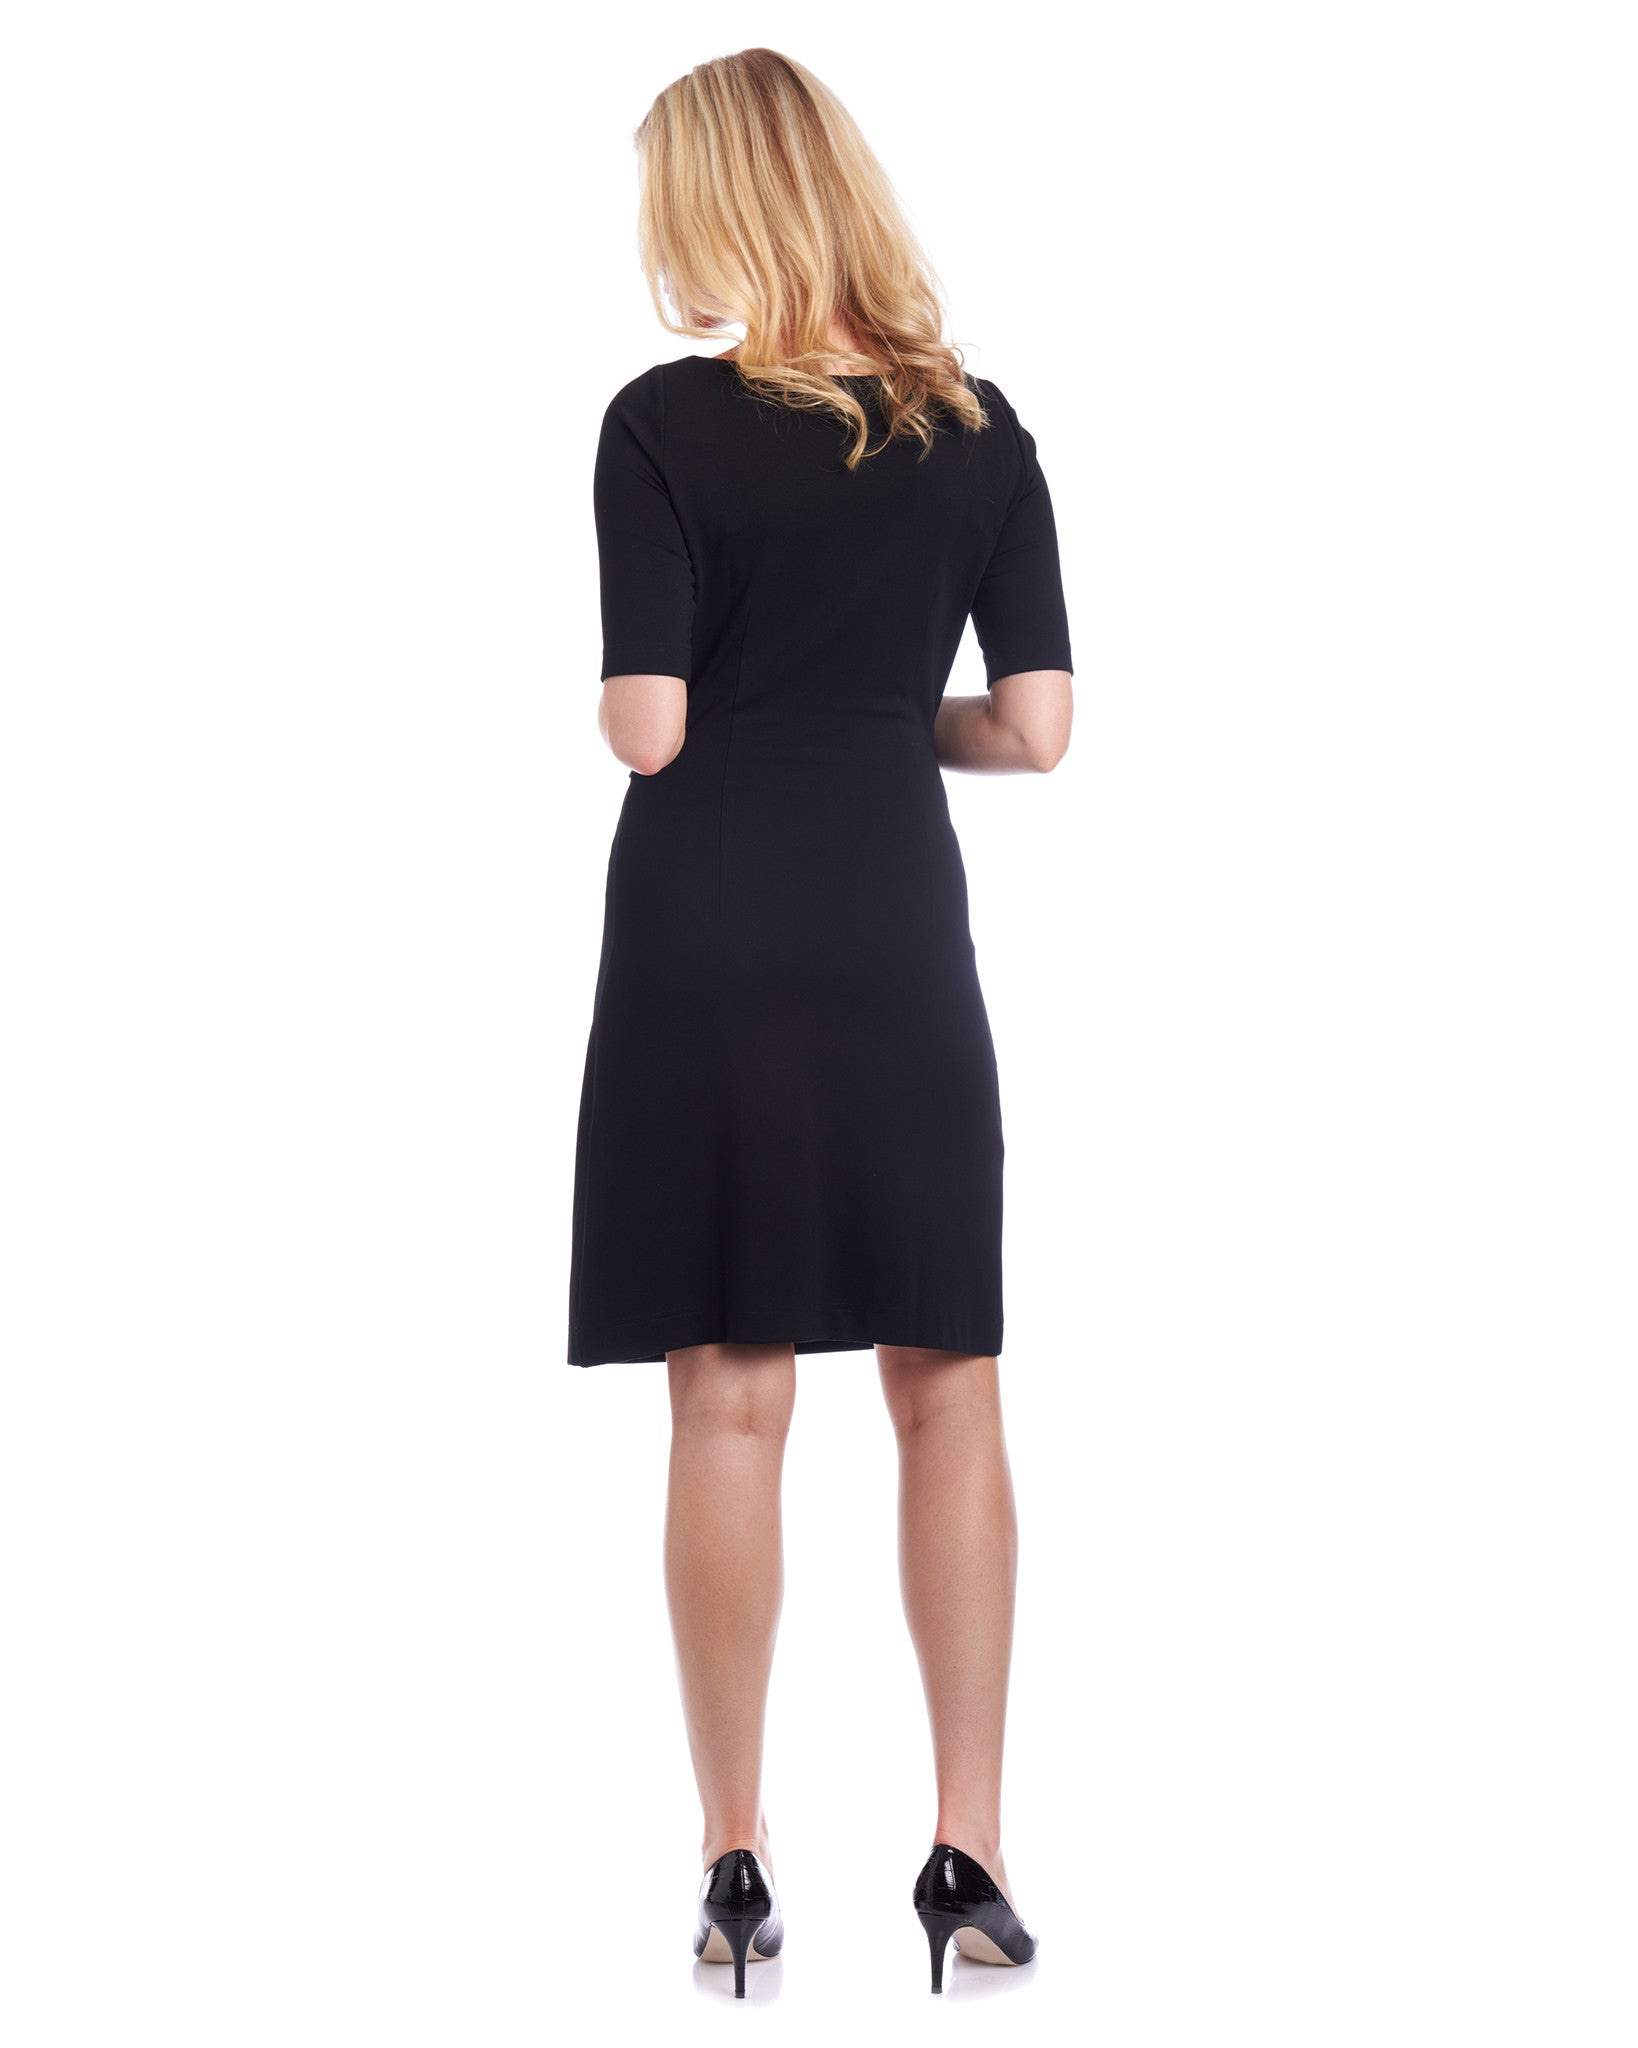 Tahlo: A-line dress with tie waist flatters many body shapes